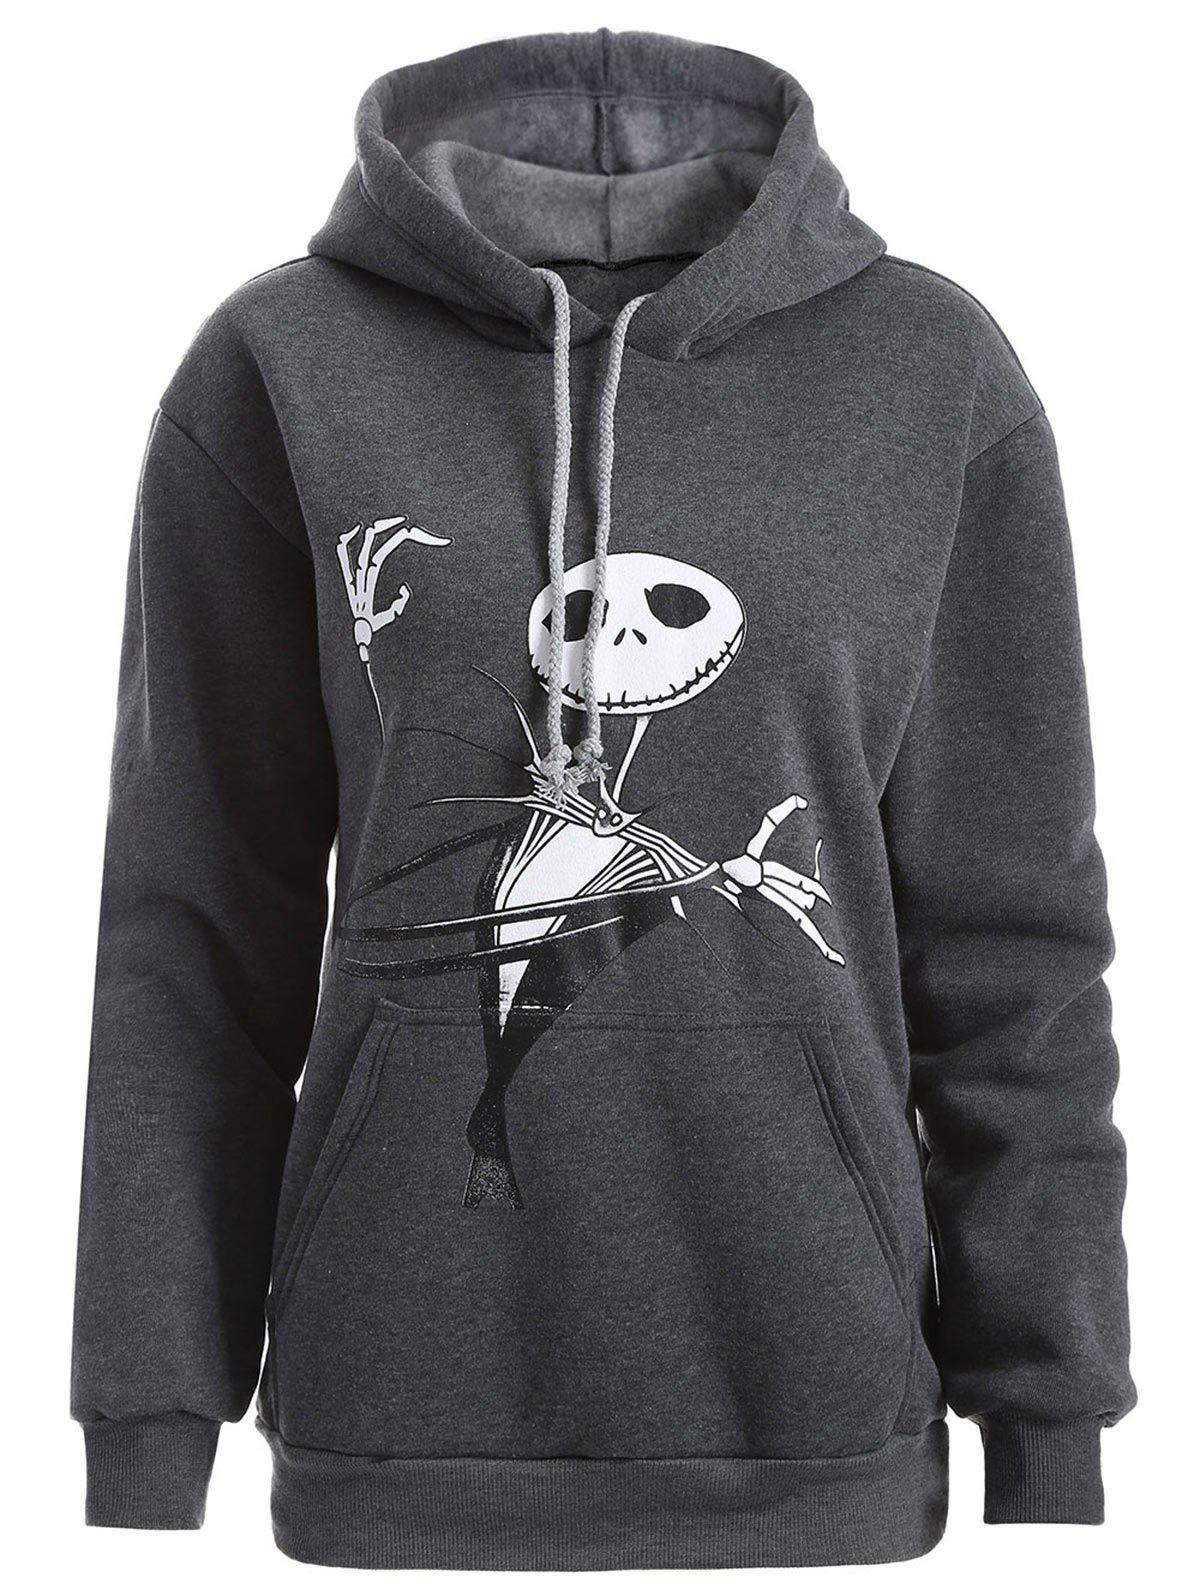 Plus Size Halloween Ghost Print Graphic HoodieWOMEN<br><br>Size: 2XL; Color: DEEP GRAY; Material: Polyester; Shirt Length: Long; Sleeve Length: Full; Style: Casual; Pattern Style: Skulls; Season: Fall,Spring,Winter; Weight: 0.5200kg; Package Contents: 1 x Hoodie;